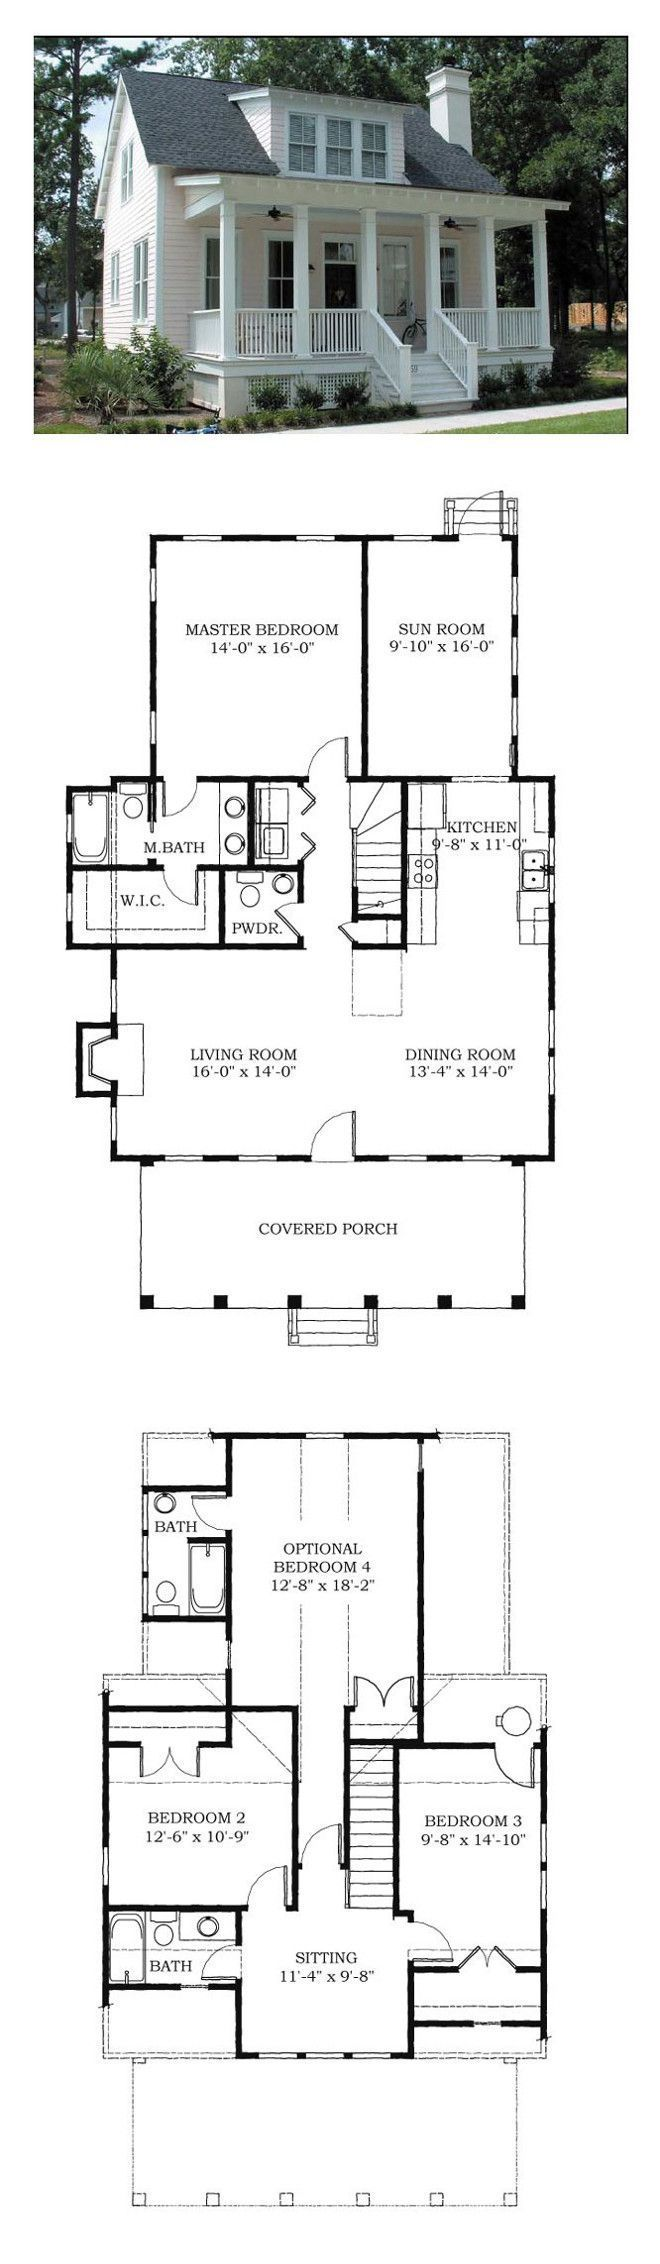 Astonishing 17 Best Ideas About Tiny House Plans On Pinterest Small House Largest Home Design Picture Inspirations Pitcheantrous